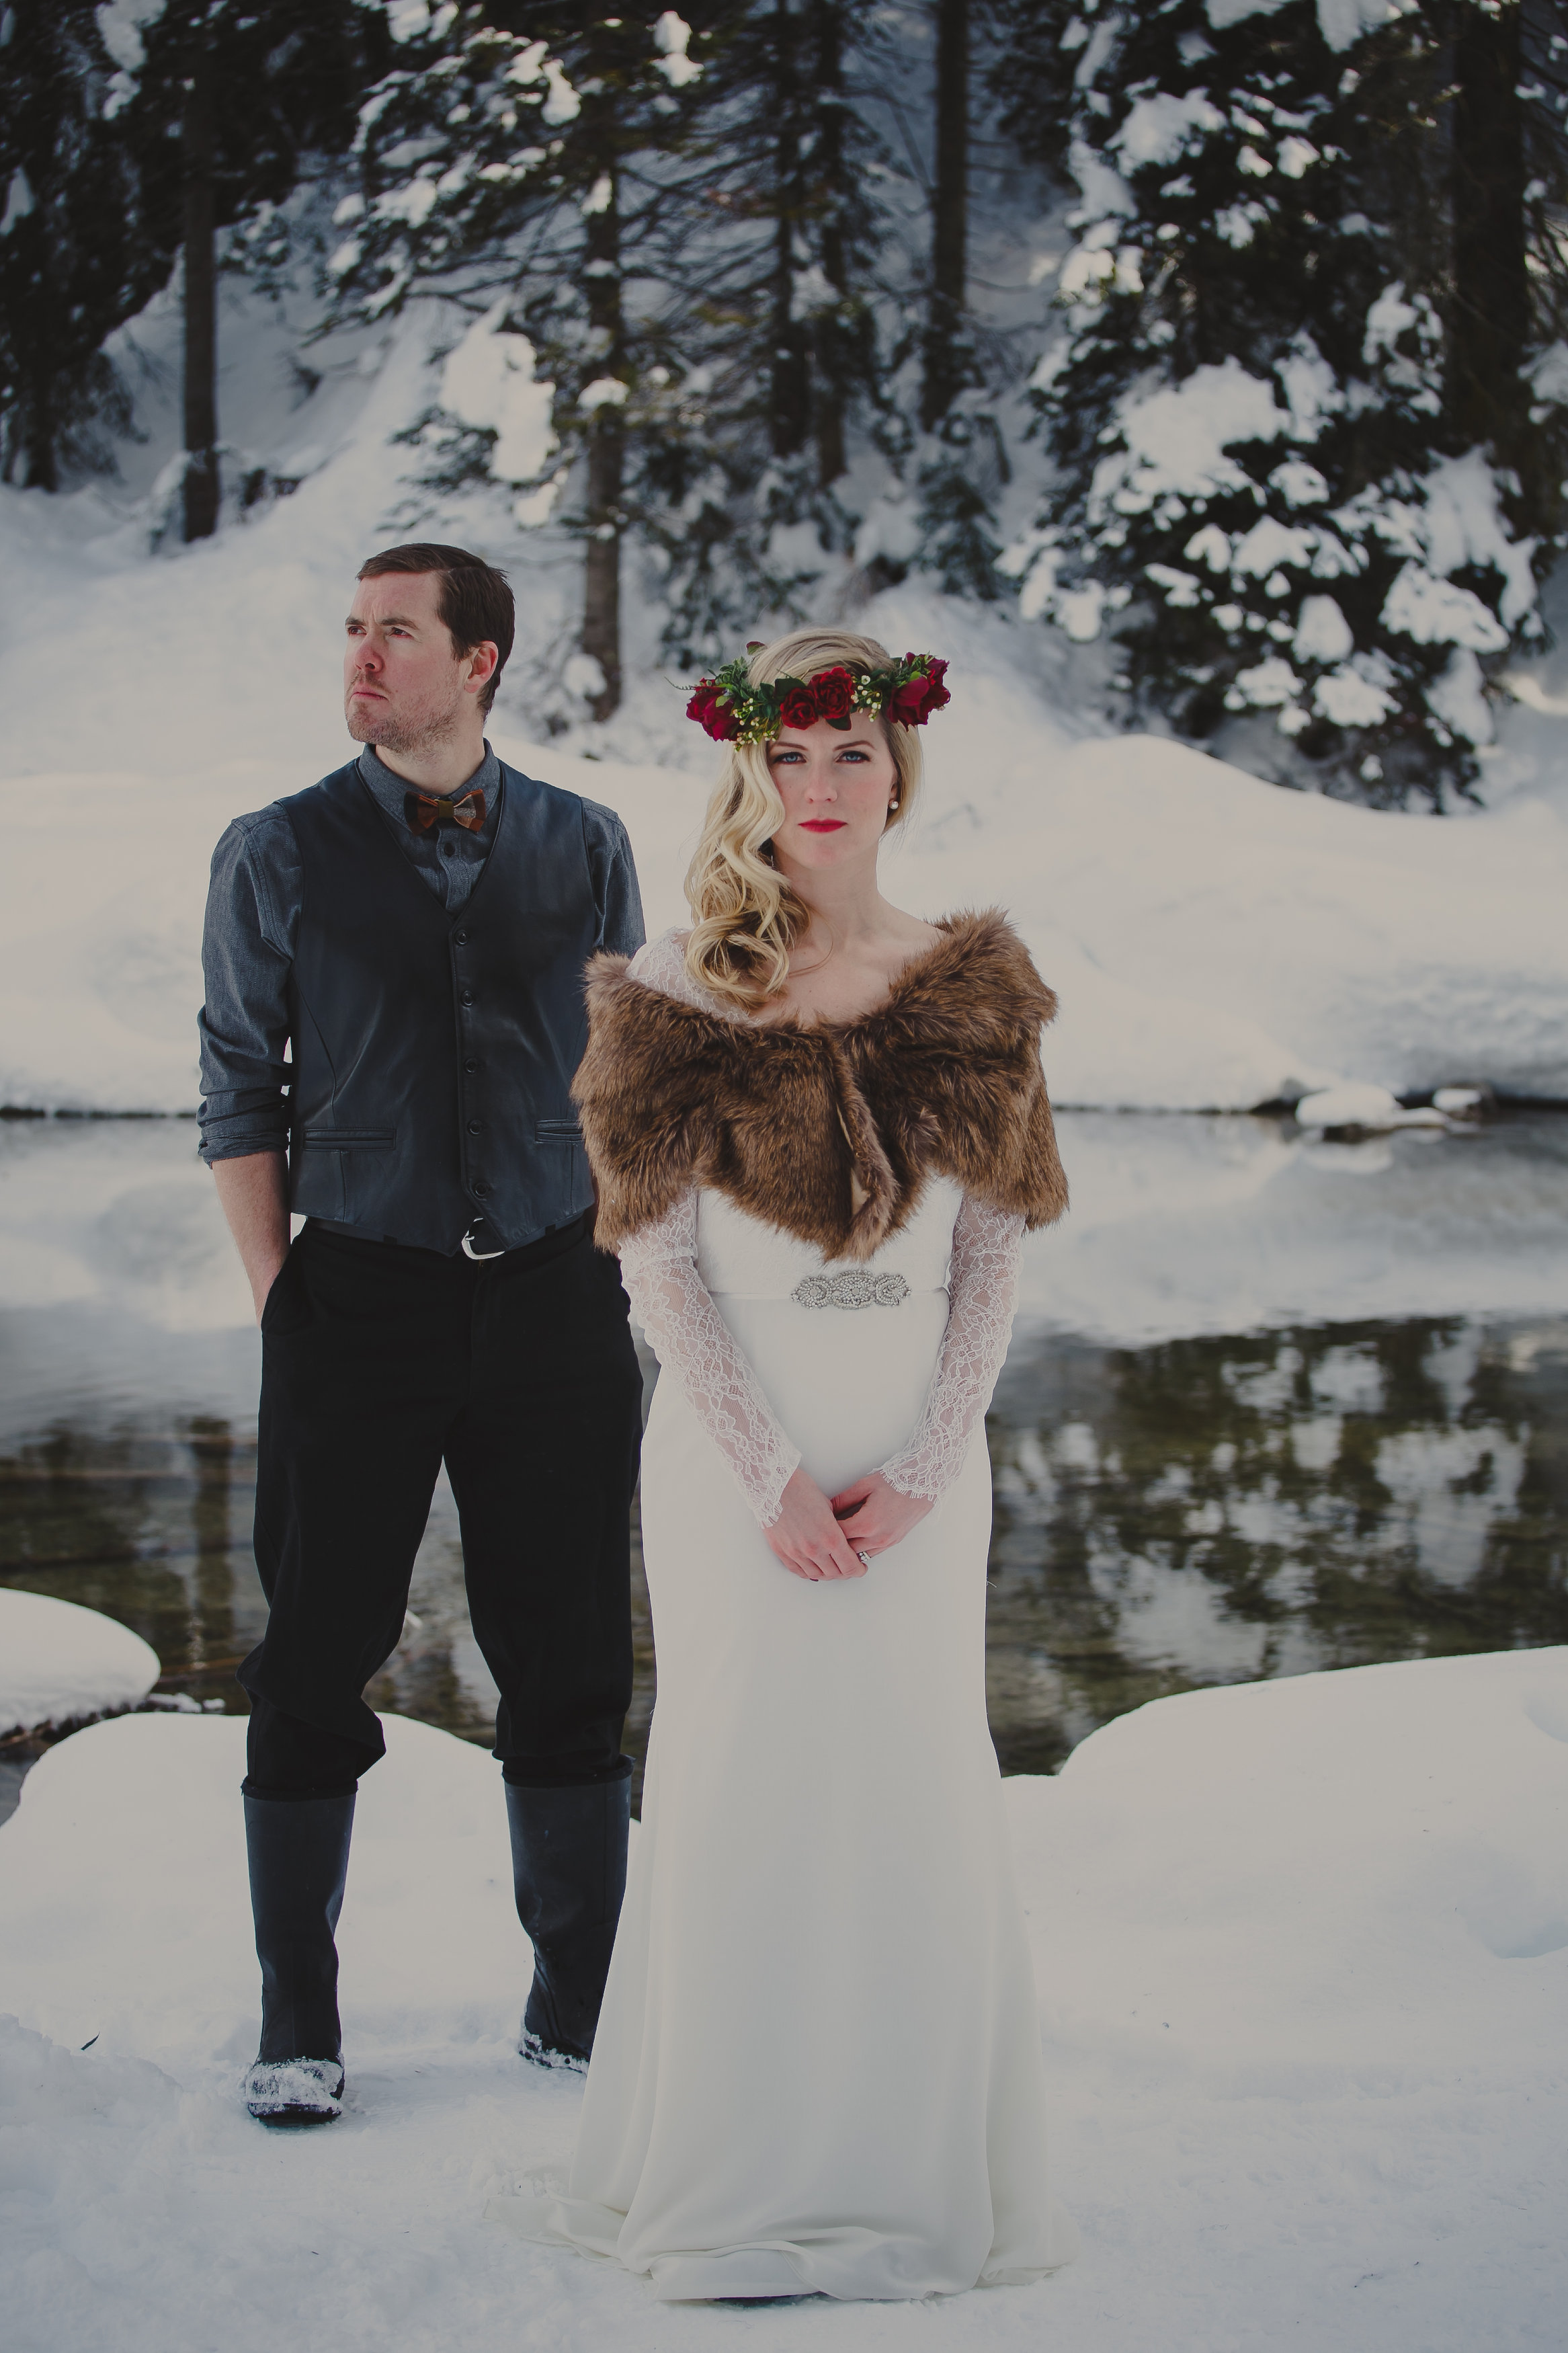 H-EmeraldLake-RockyMountainWedding-Lolo&Noa-1.jpg